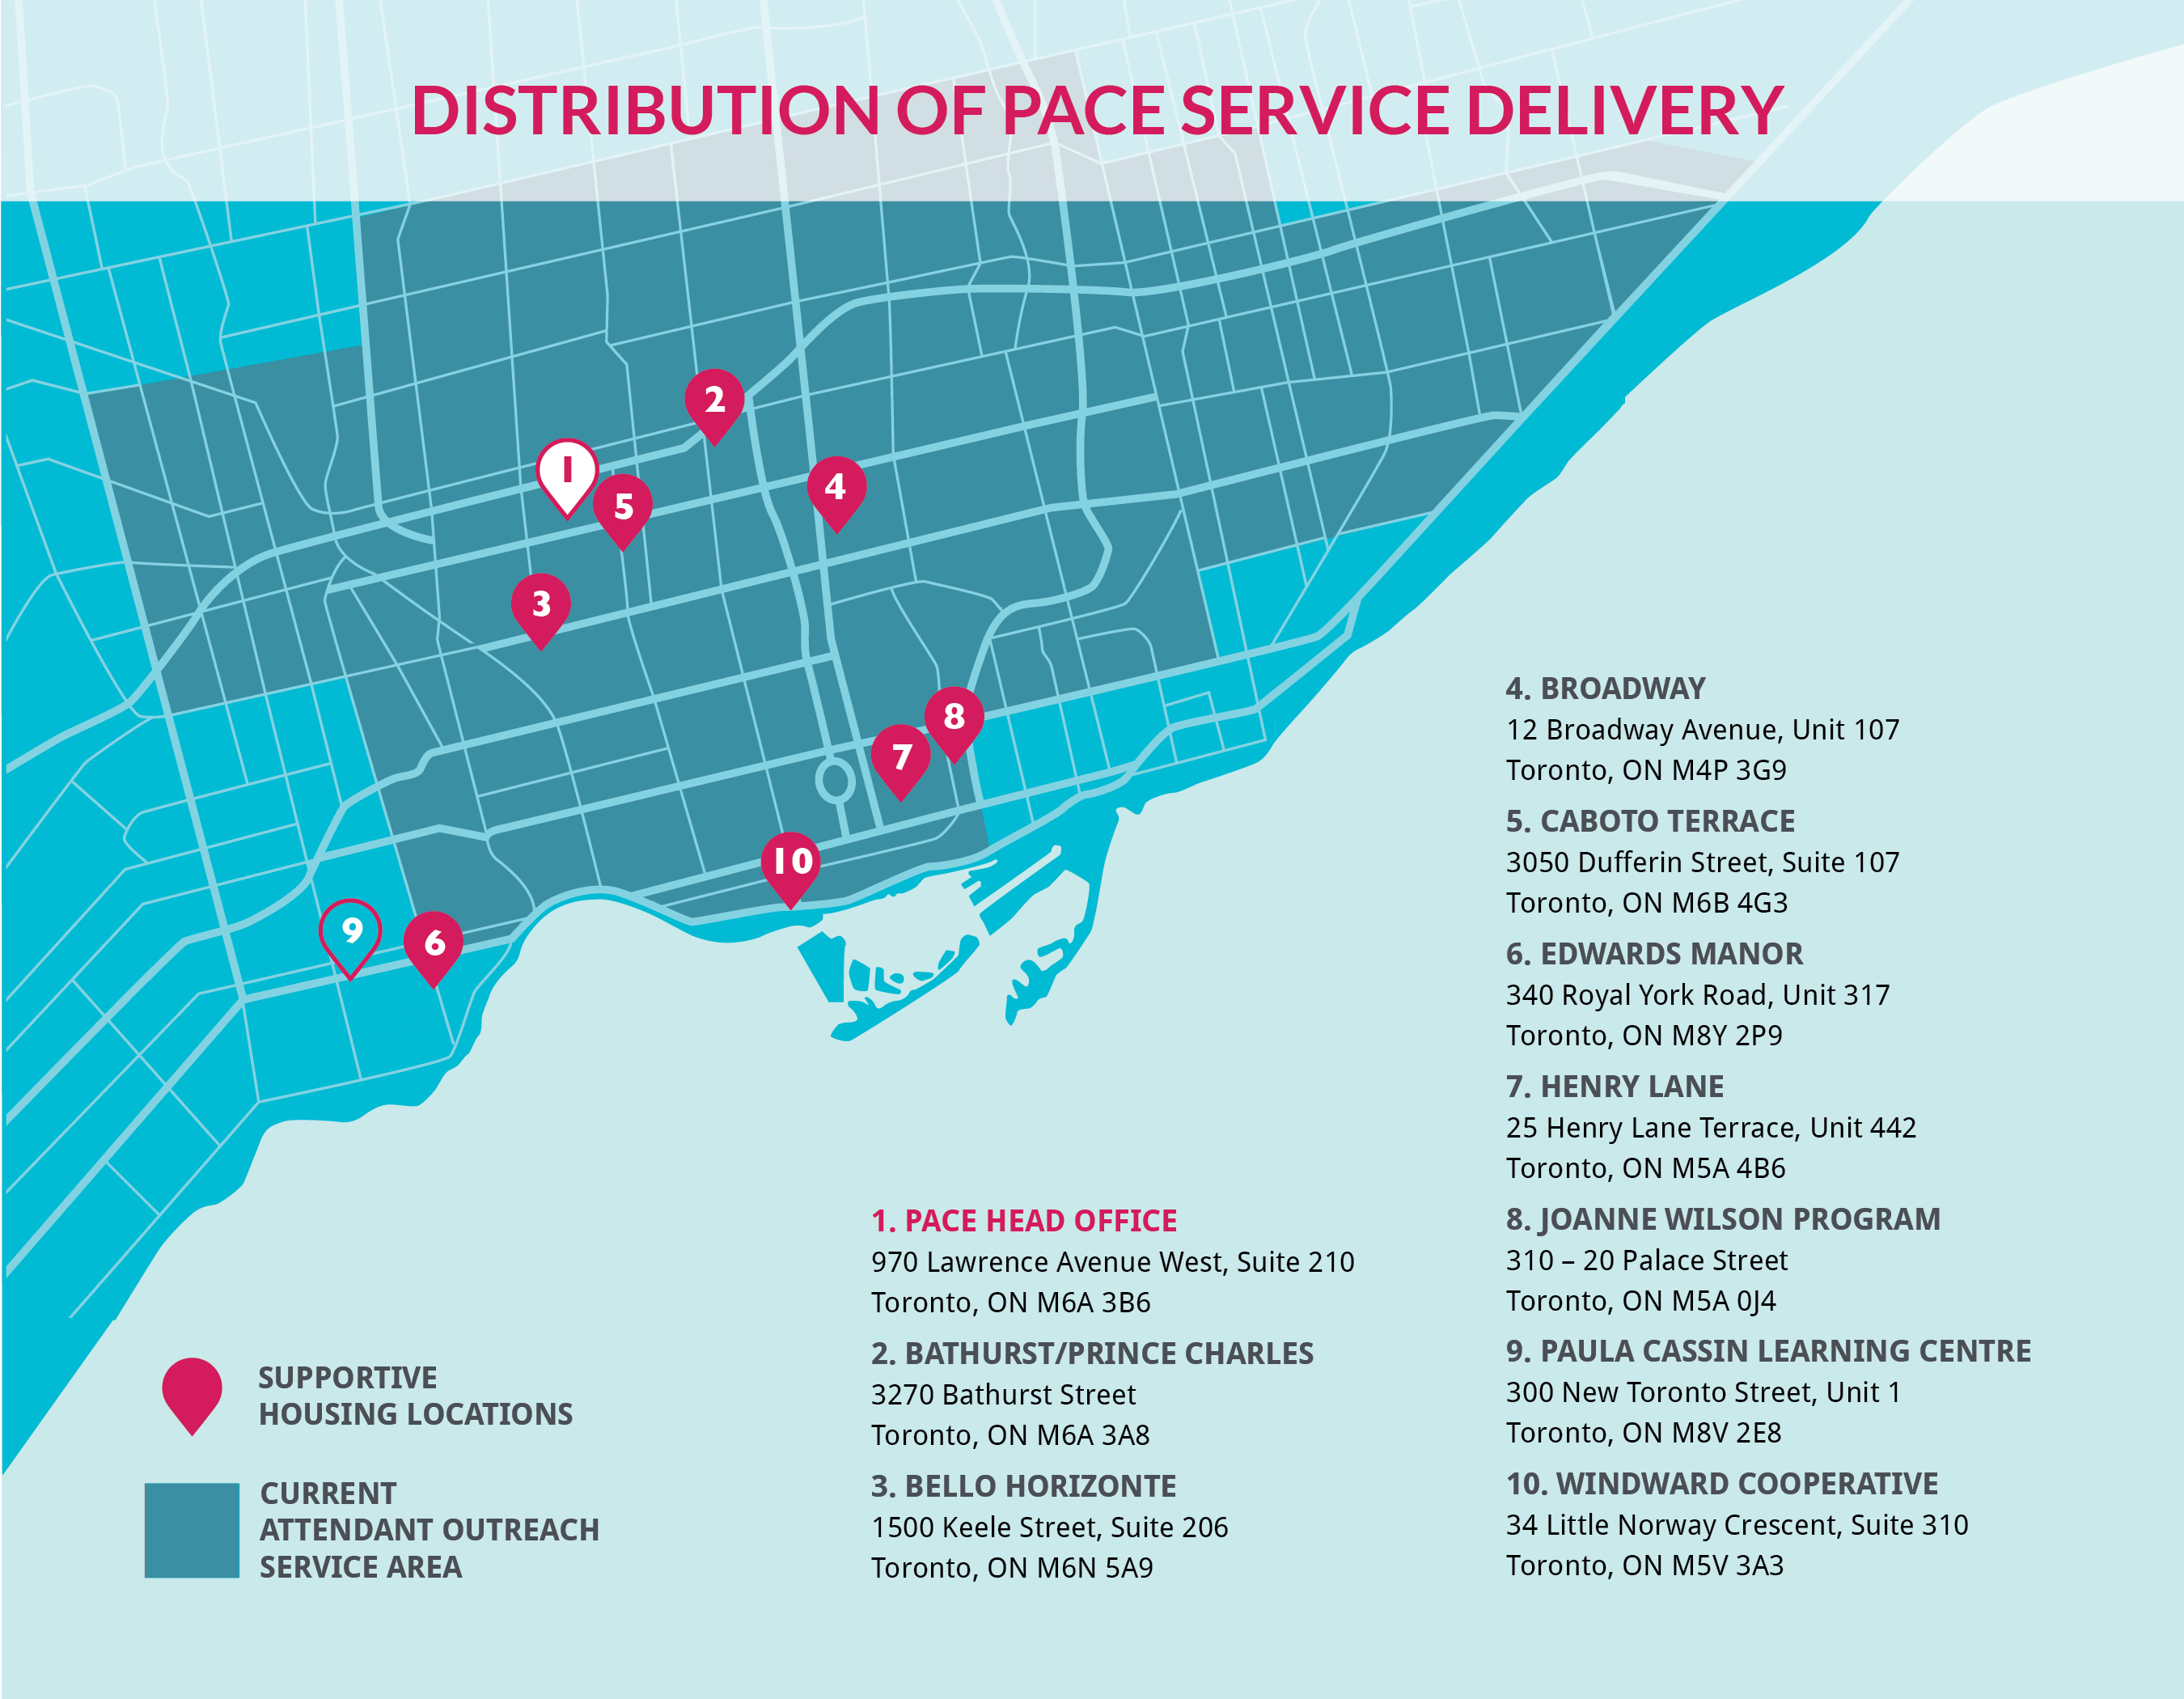 Distribution of PACE Service Delivery